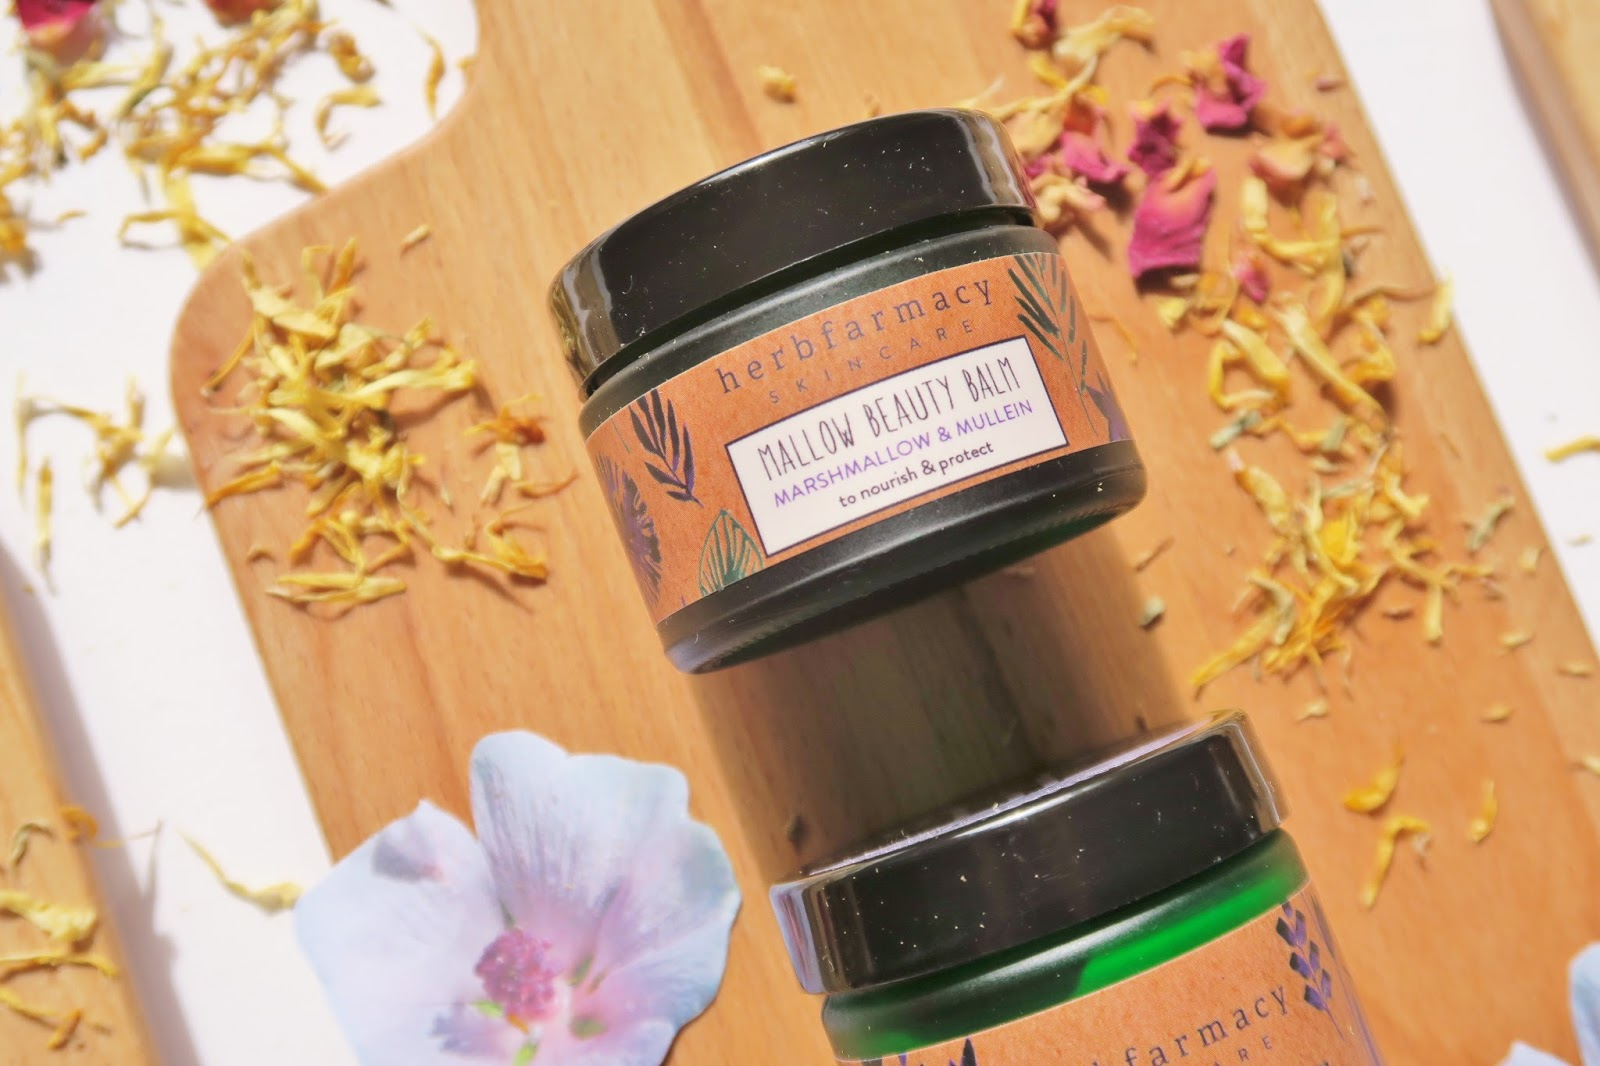 Herbs in Skincare with Herbfarmacy | Organic Beauty Week